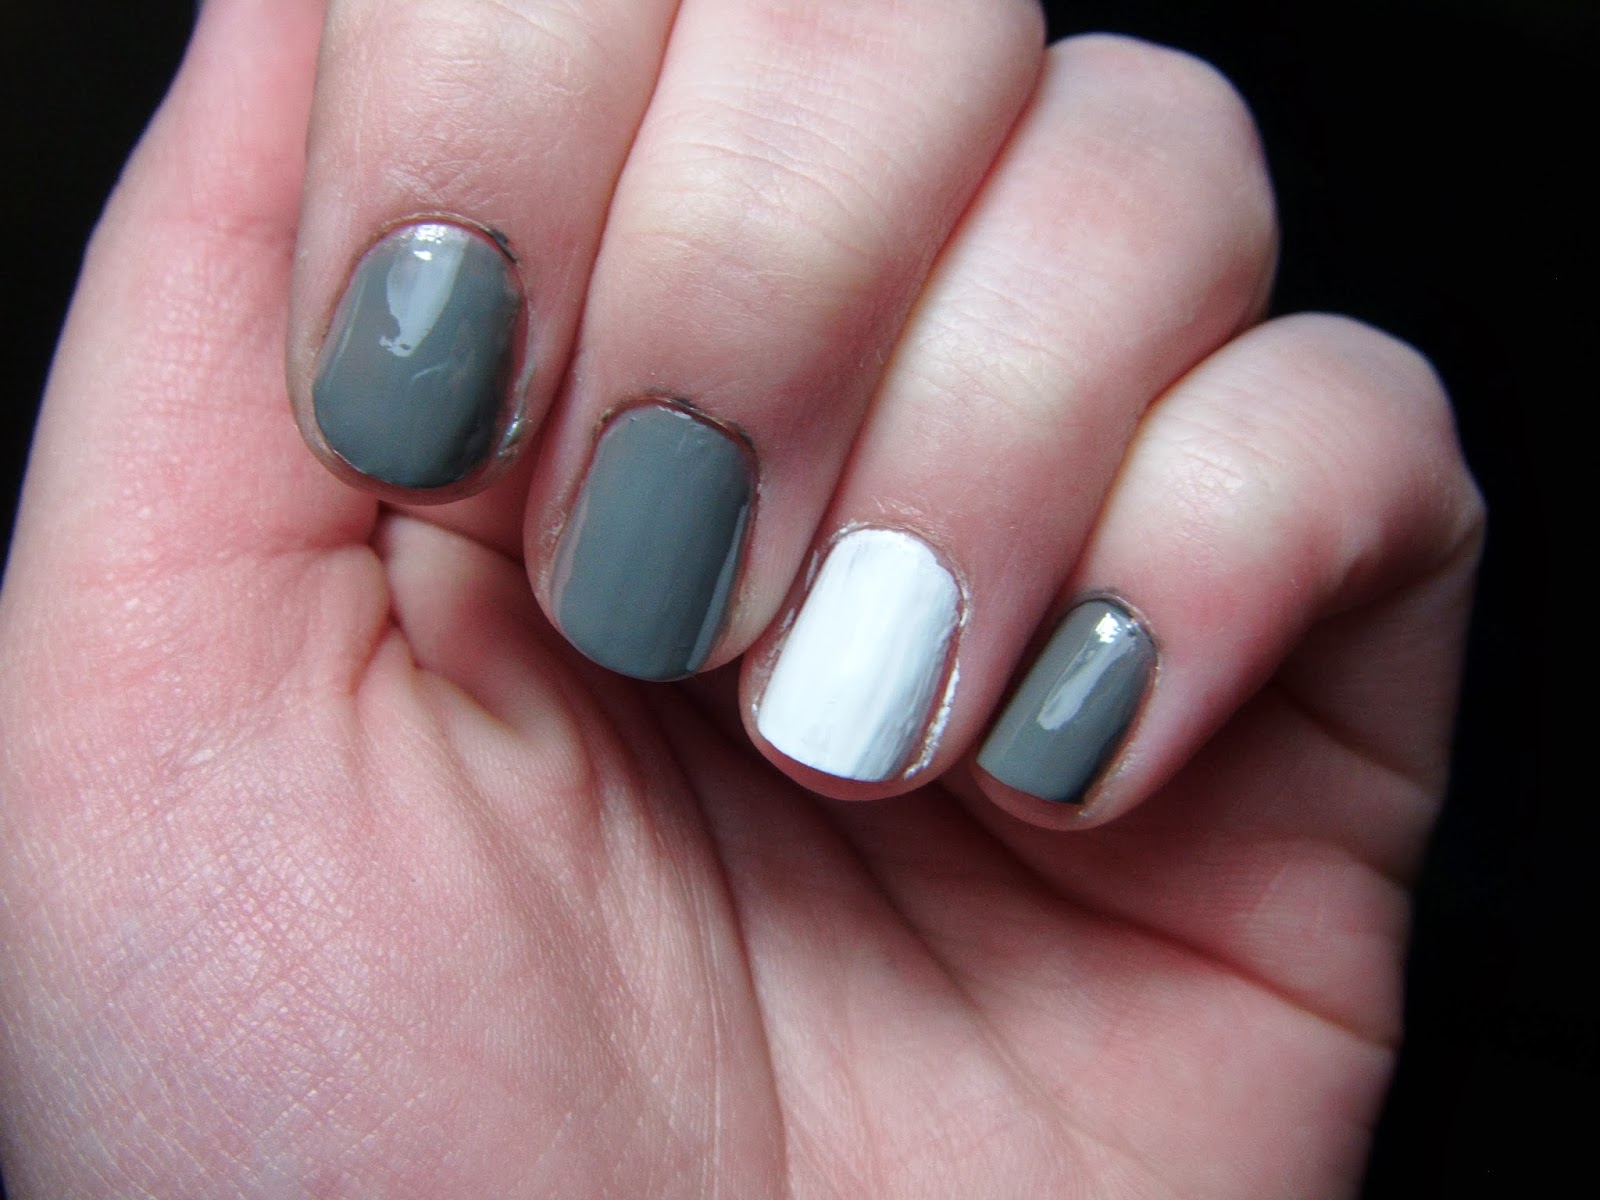 Now Paint Your Ring Finger With The White Polish And Rest Grey You Can Use Whatever Colors Youd Like This Is Just How I Choose To Do